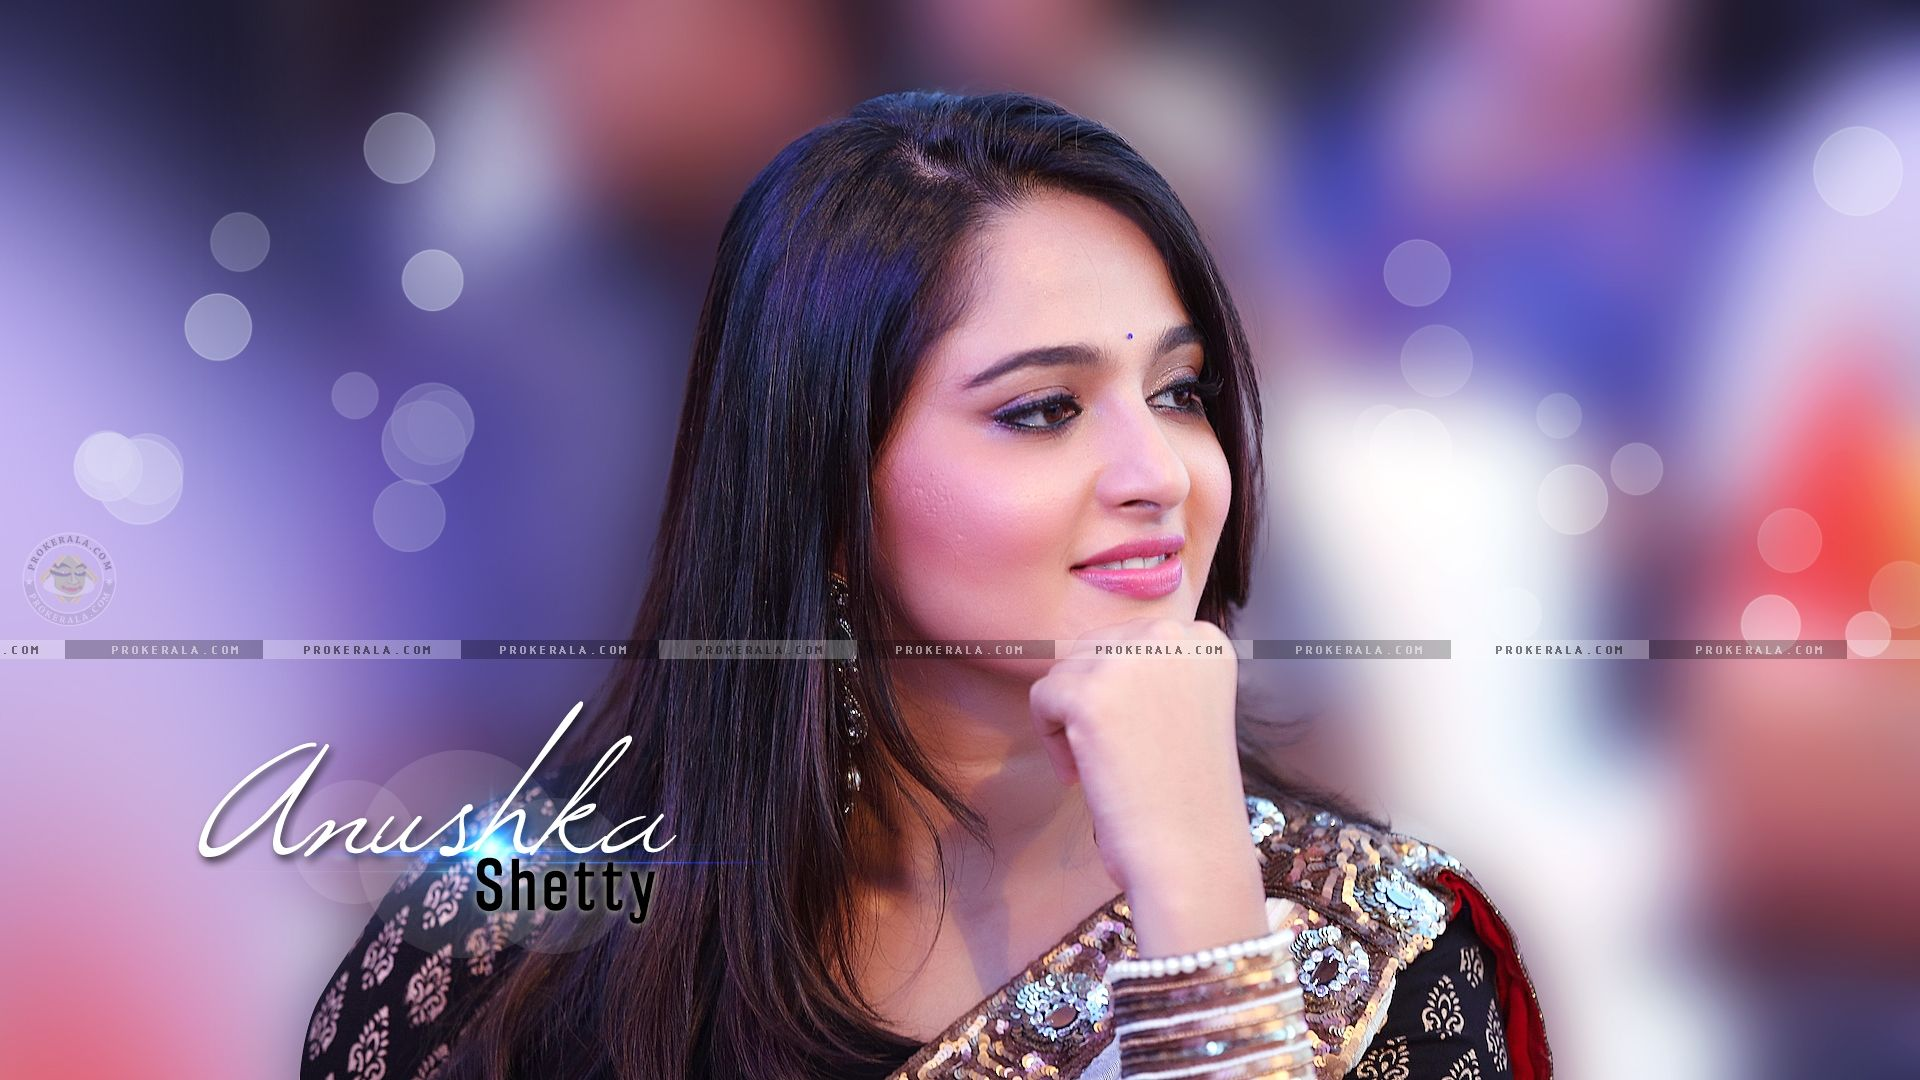 Free Bollywood Wallpapers Download 42 Wallpapers: Anushka Shetty Bollywood Actress Wallpapers Download FREE